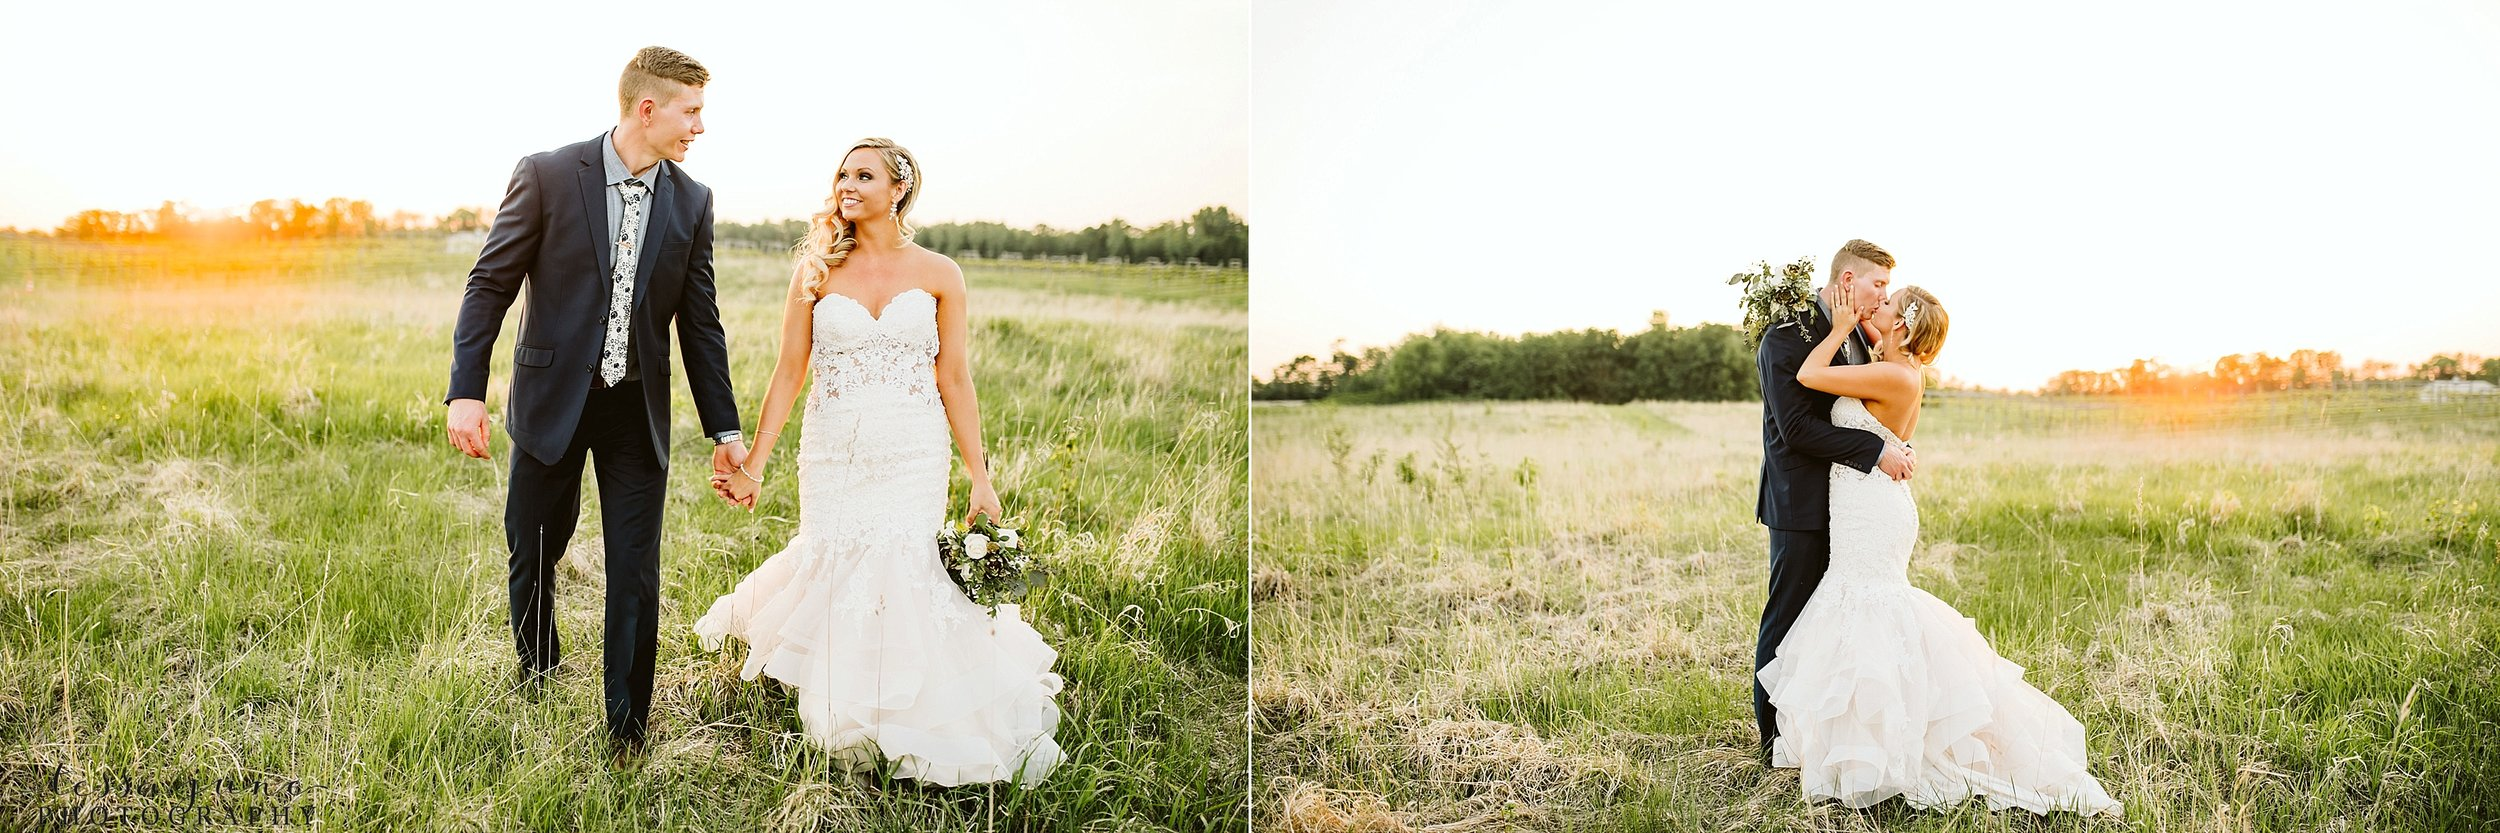 carlos-creek-winery-wedding-alexandria-minnesota-glam-elegant-floral-154.jpg